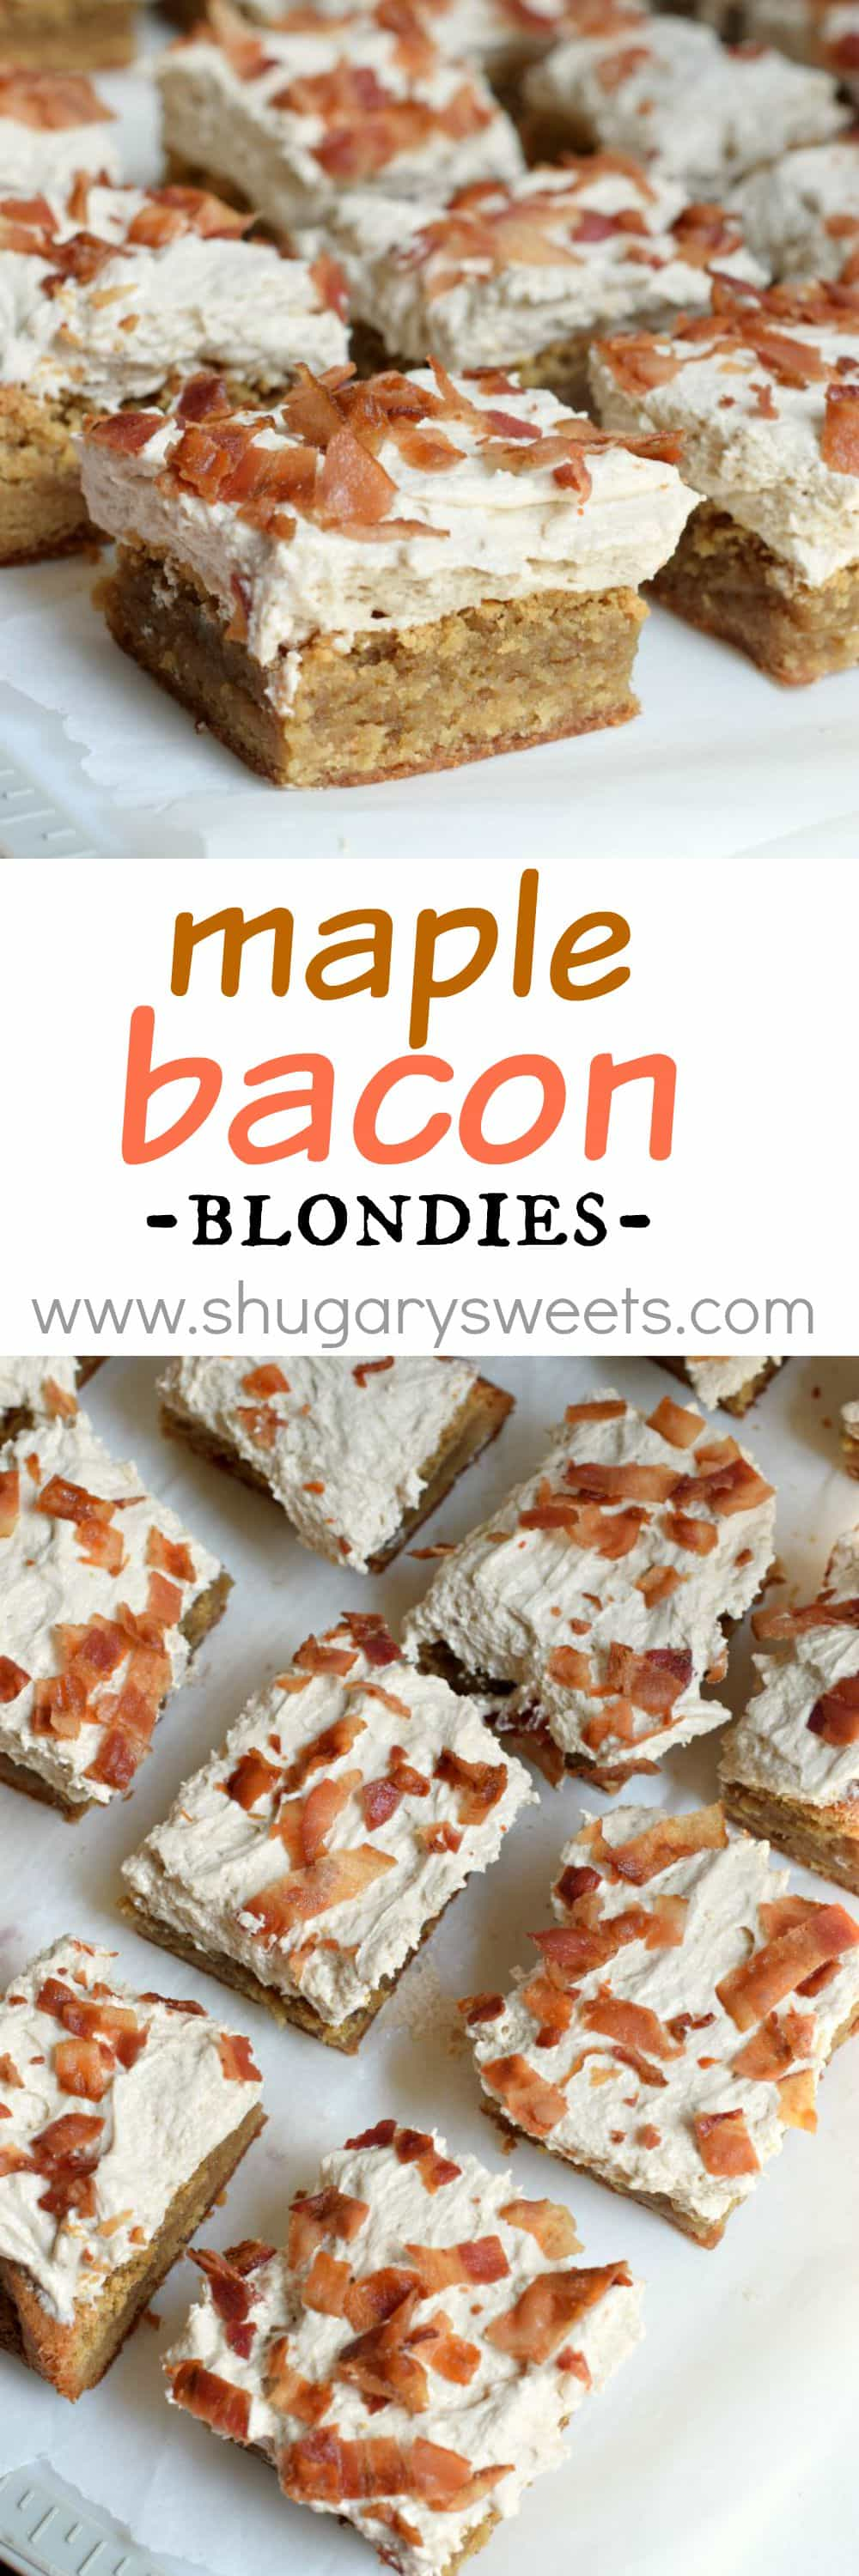 These Maple Bacon Blondies are the perfect sweet and salty dessert ...